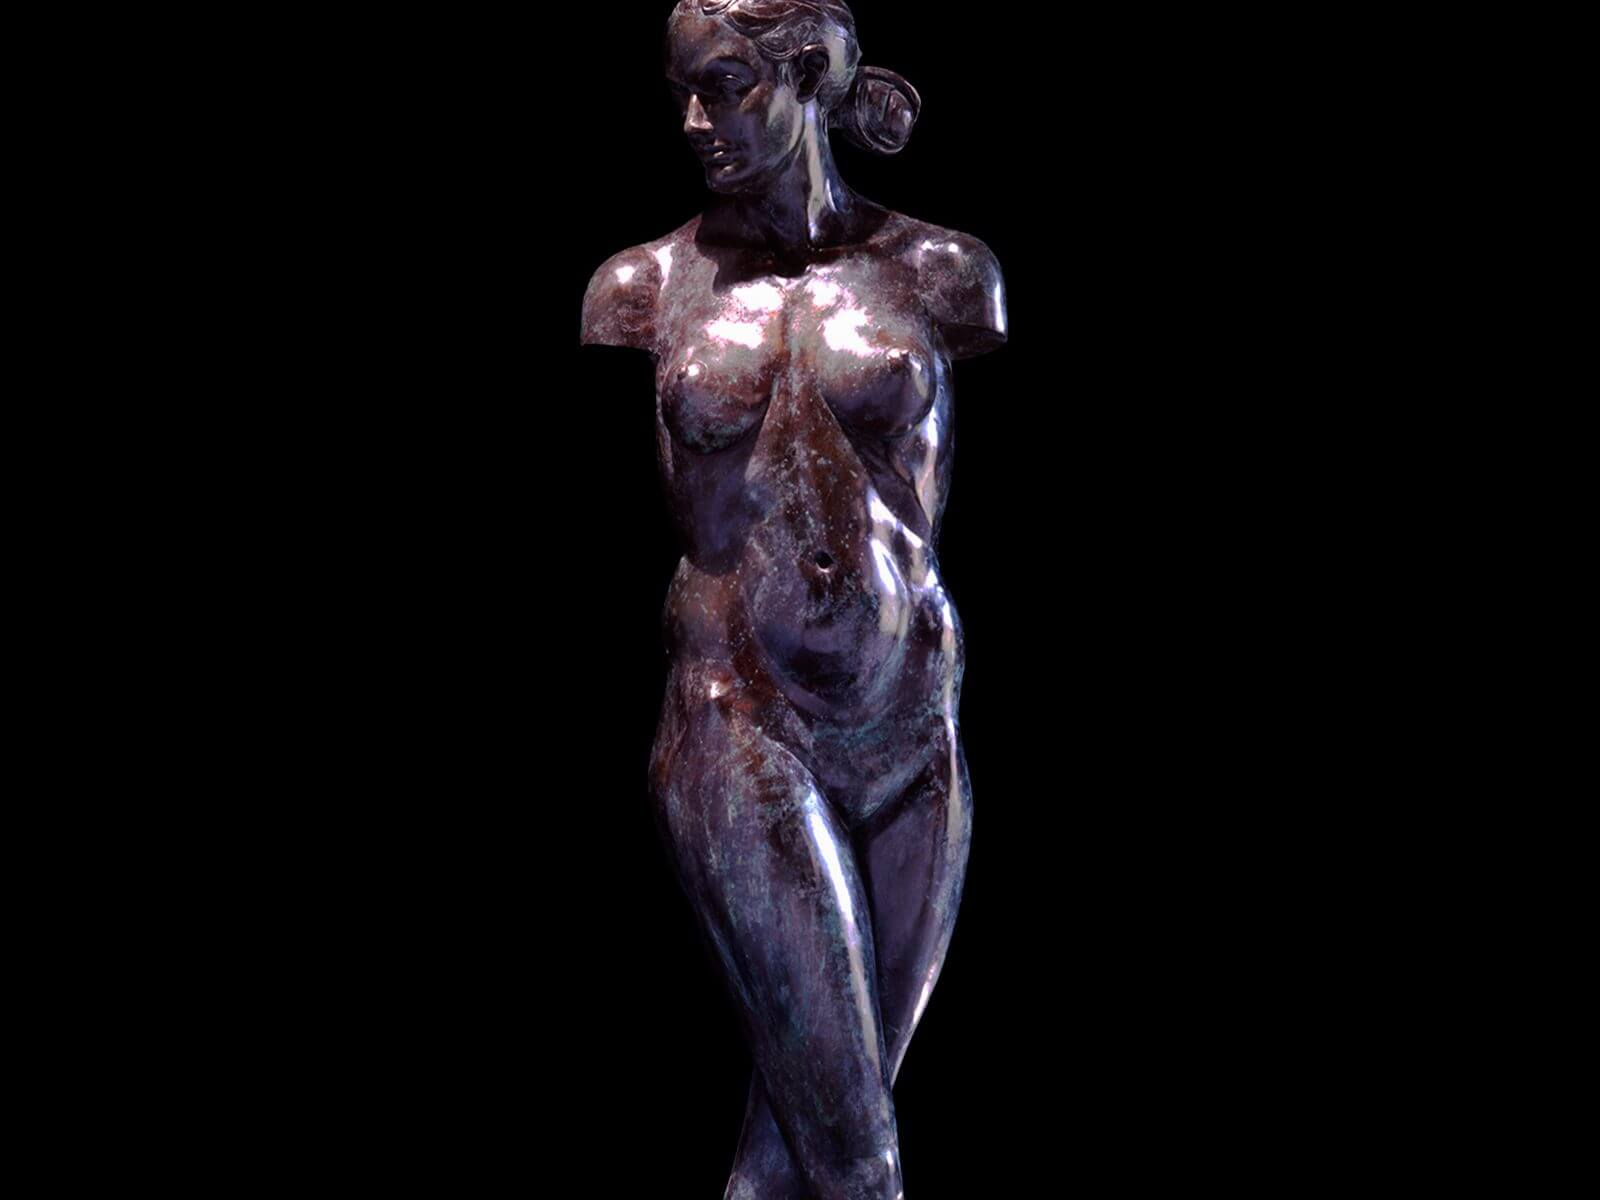 venus Torso a lifesize female nude torso bronze figurative sculpture by Andrew DeVries